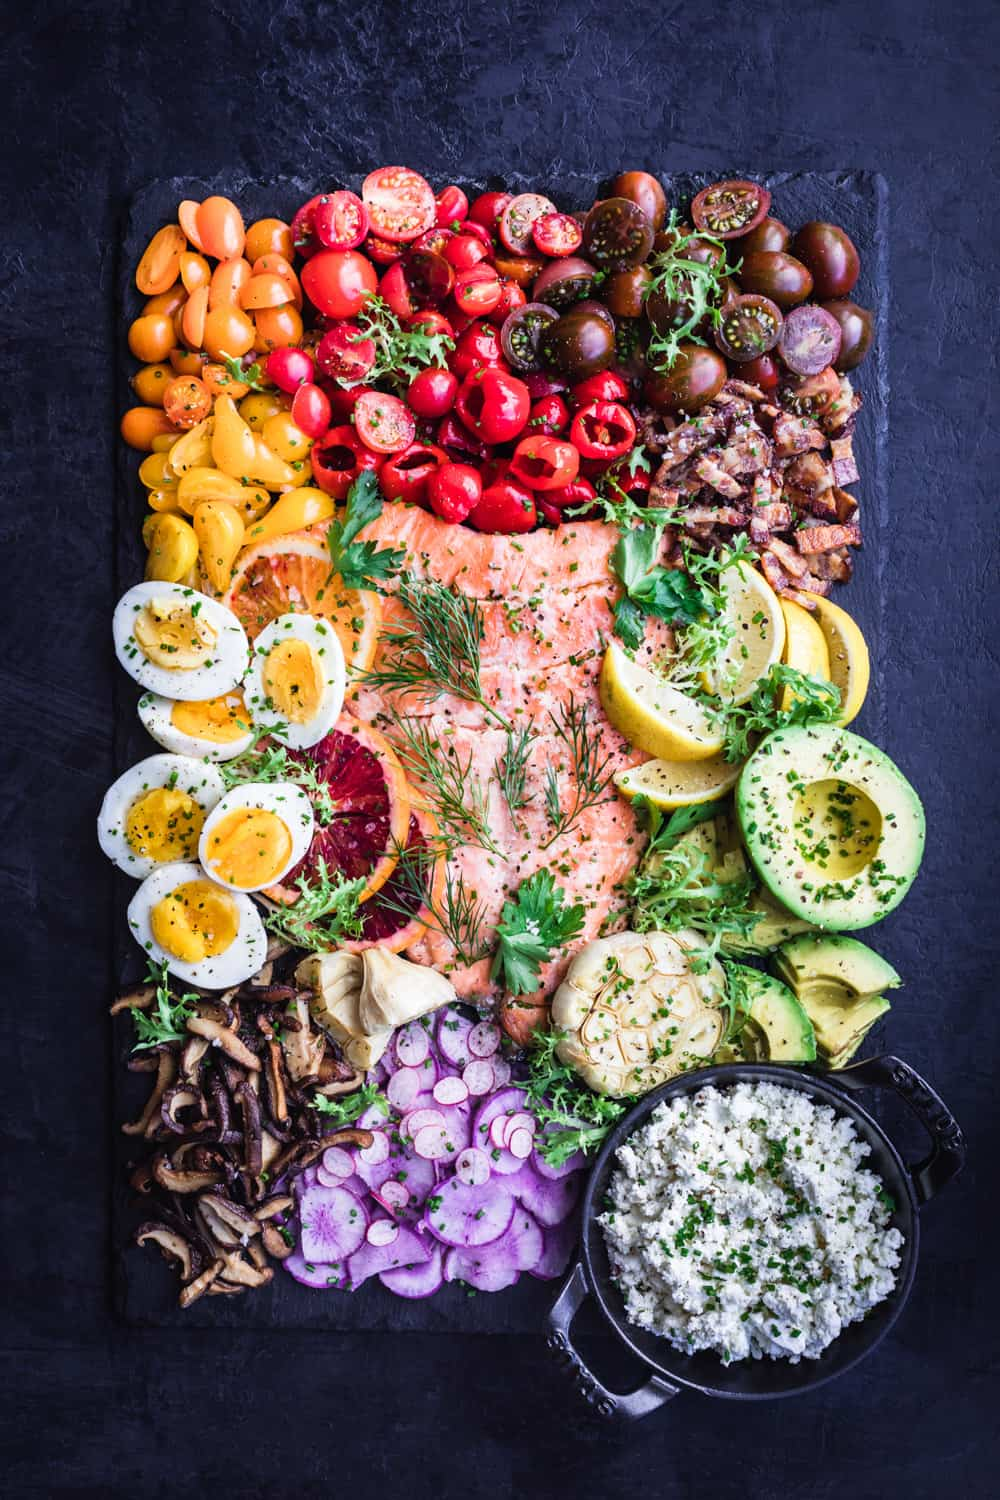 Salmon Rainbow Party Salad Board with eggs, tomatoes, bacon, avocado, mushroom, feta, radishes, oranges and garlic.